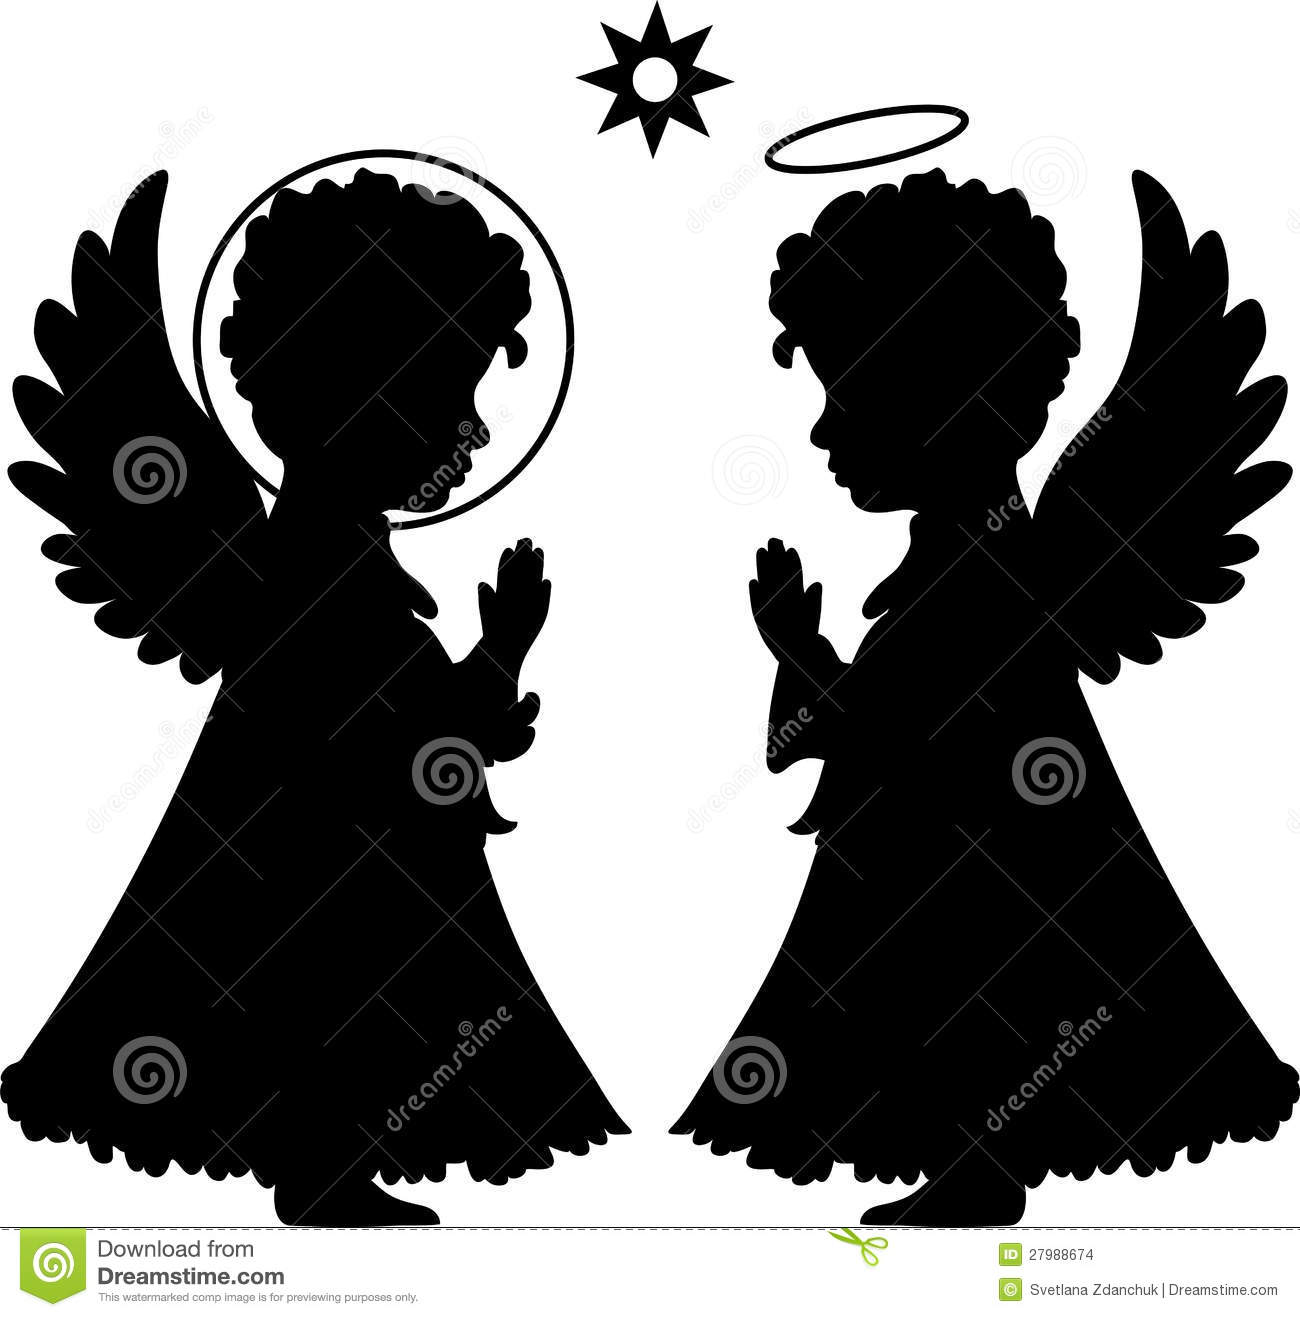 Cute angels silhouettes set catholic, orthodox set with star.